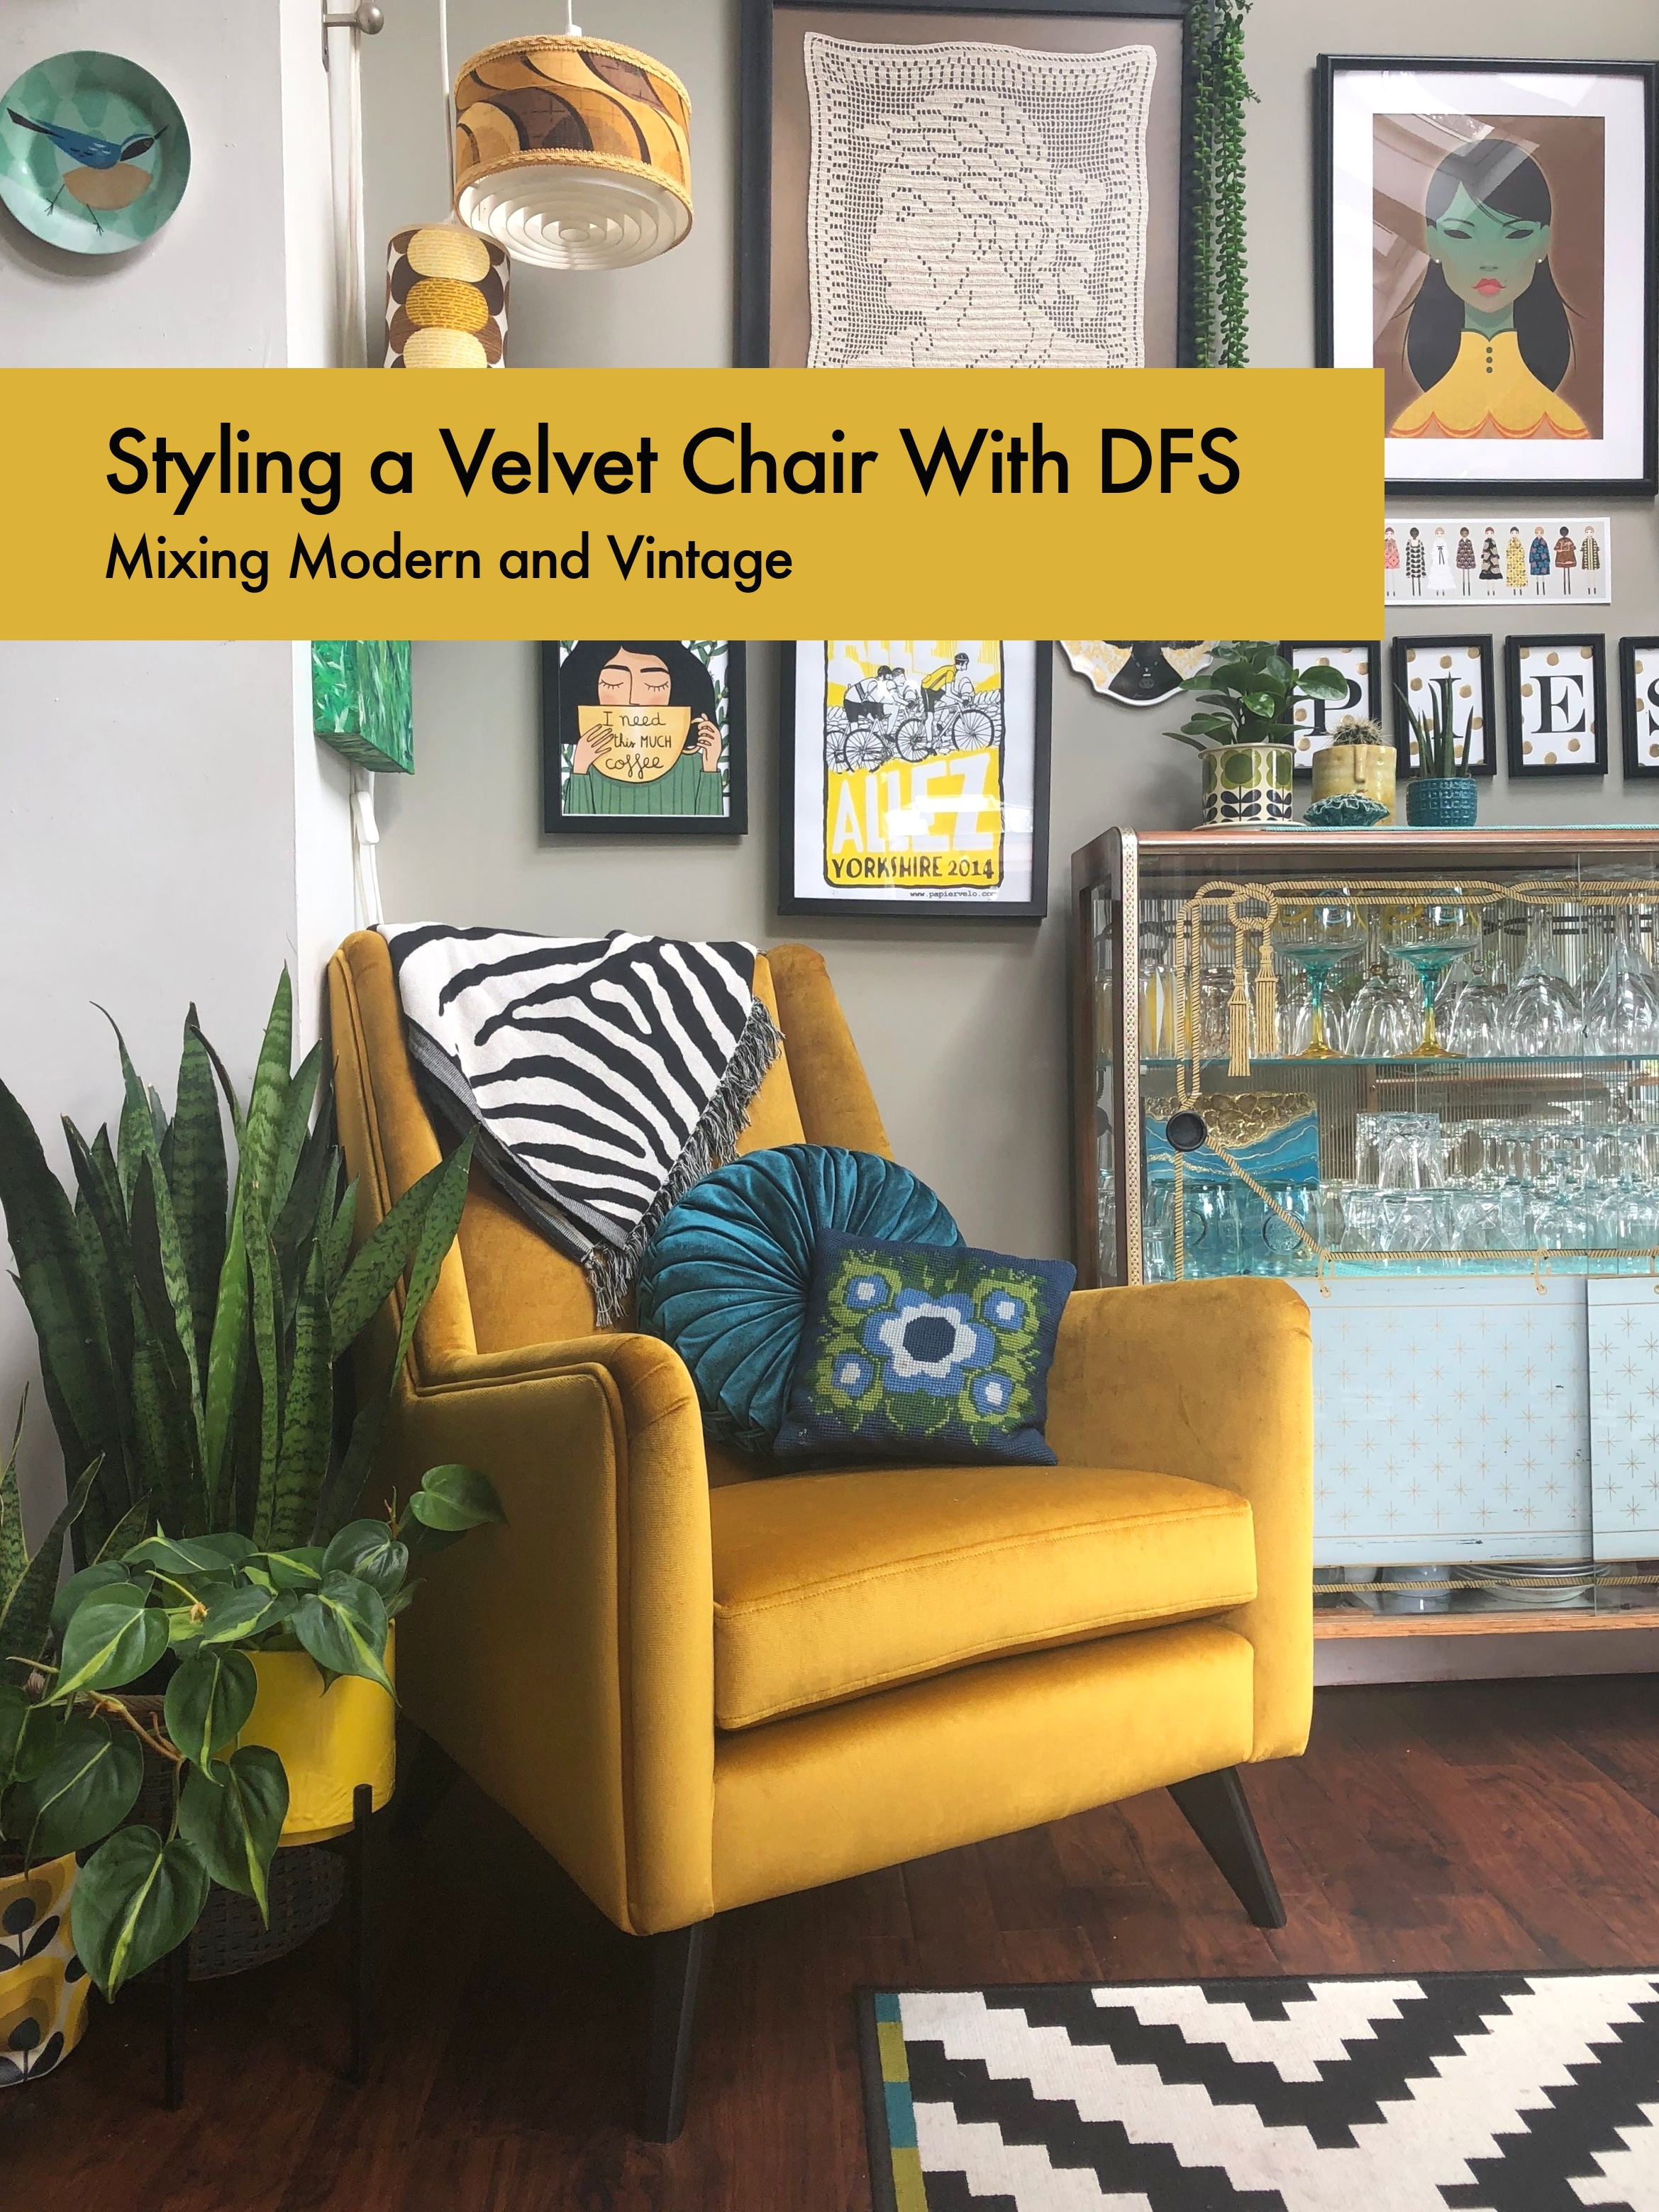 dfs-chair-modern-and-vintage_1b10034ea60be908002ab6dfda6510ba.png